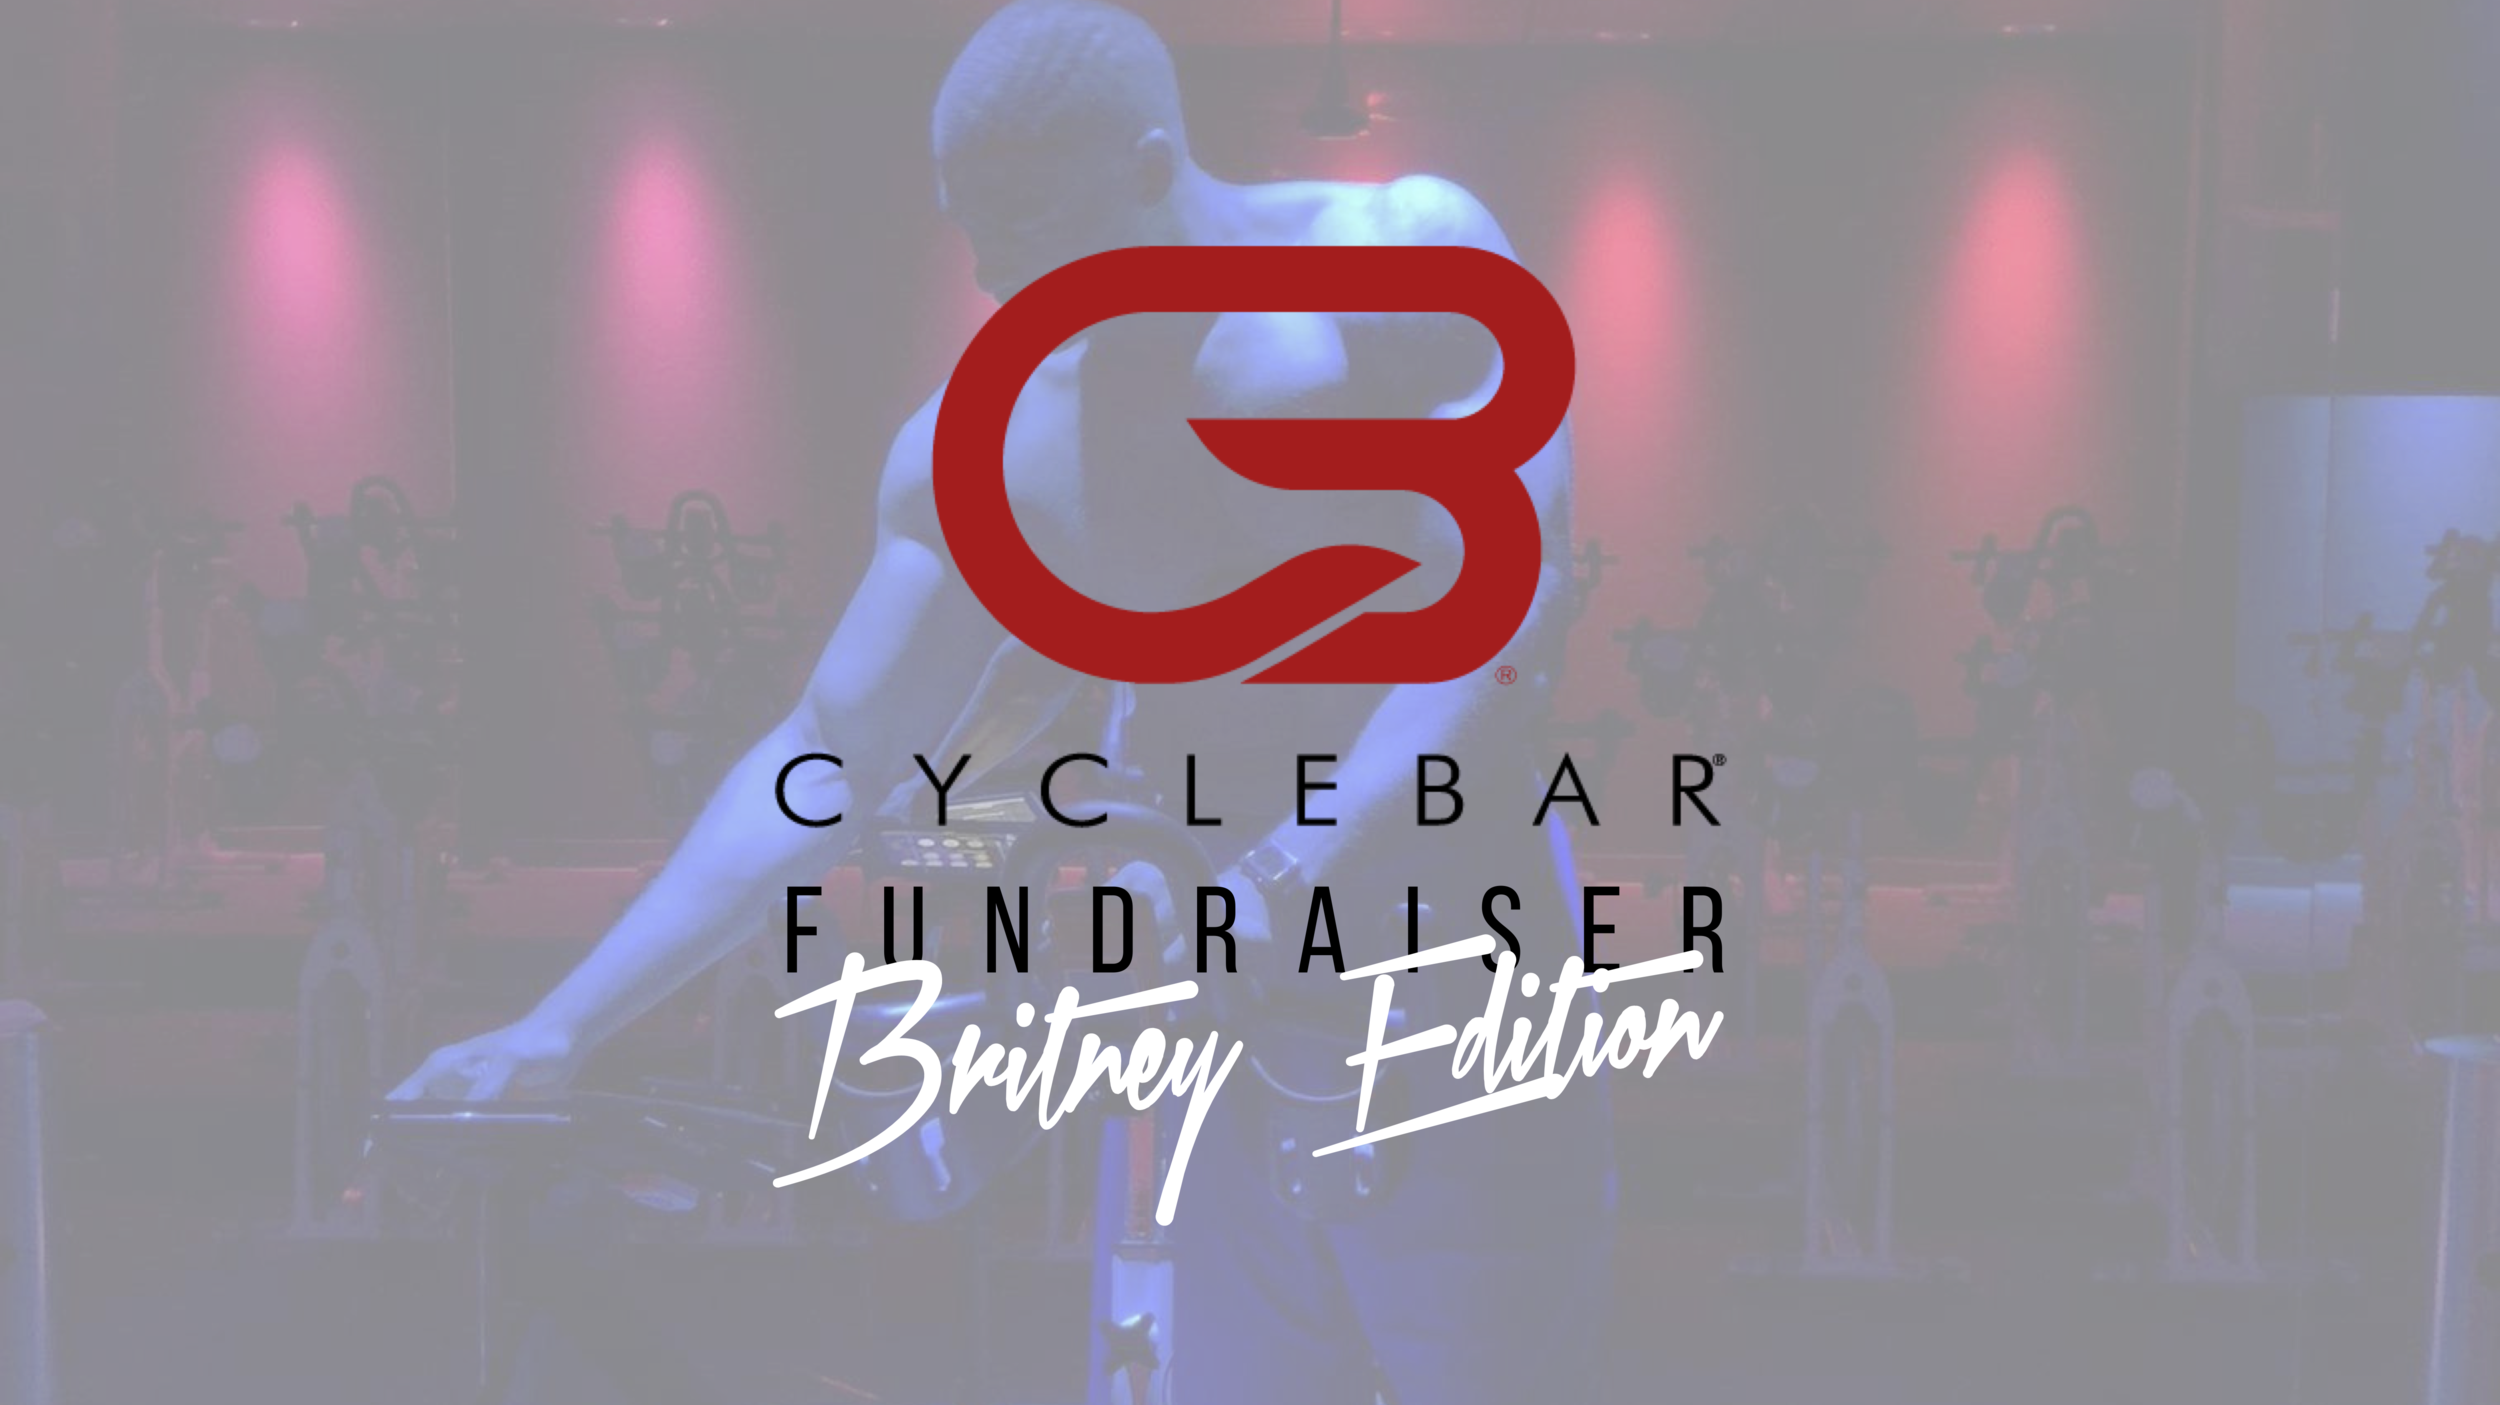 CycleBar Fundraiser - FB Cover.png